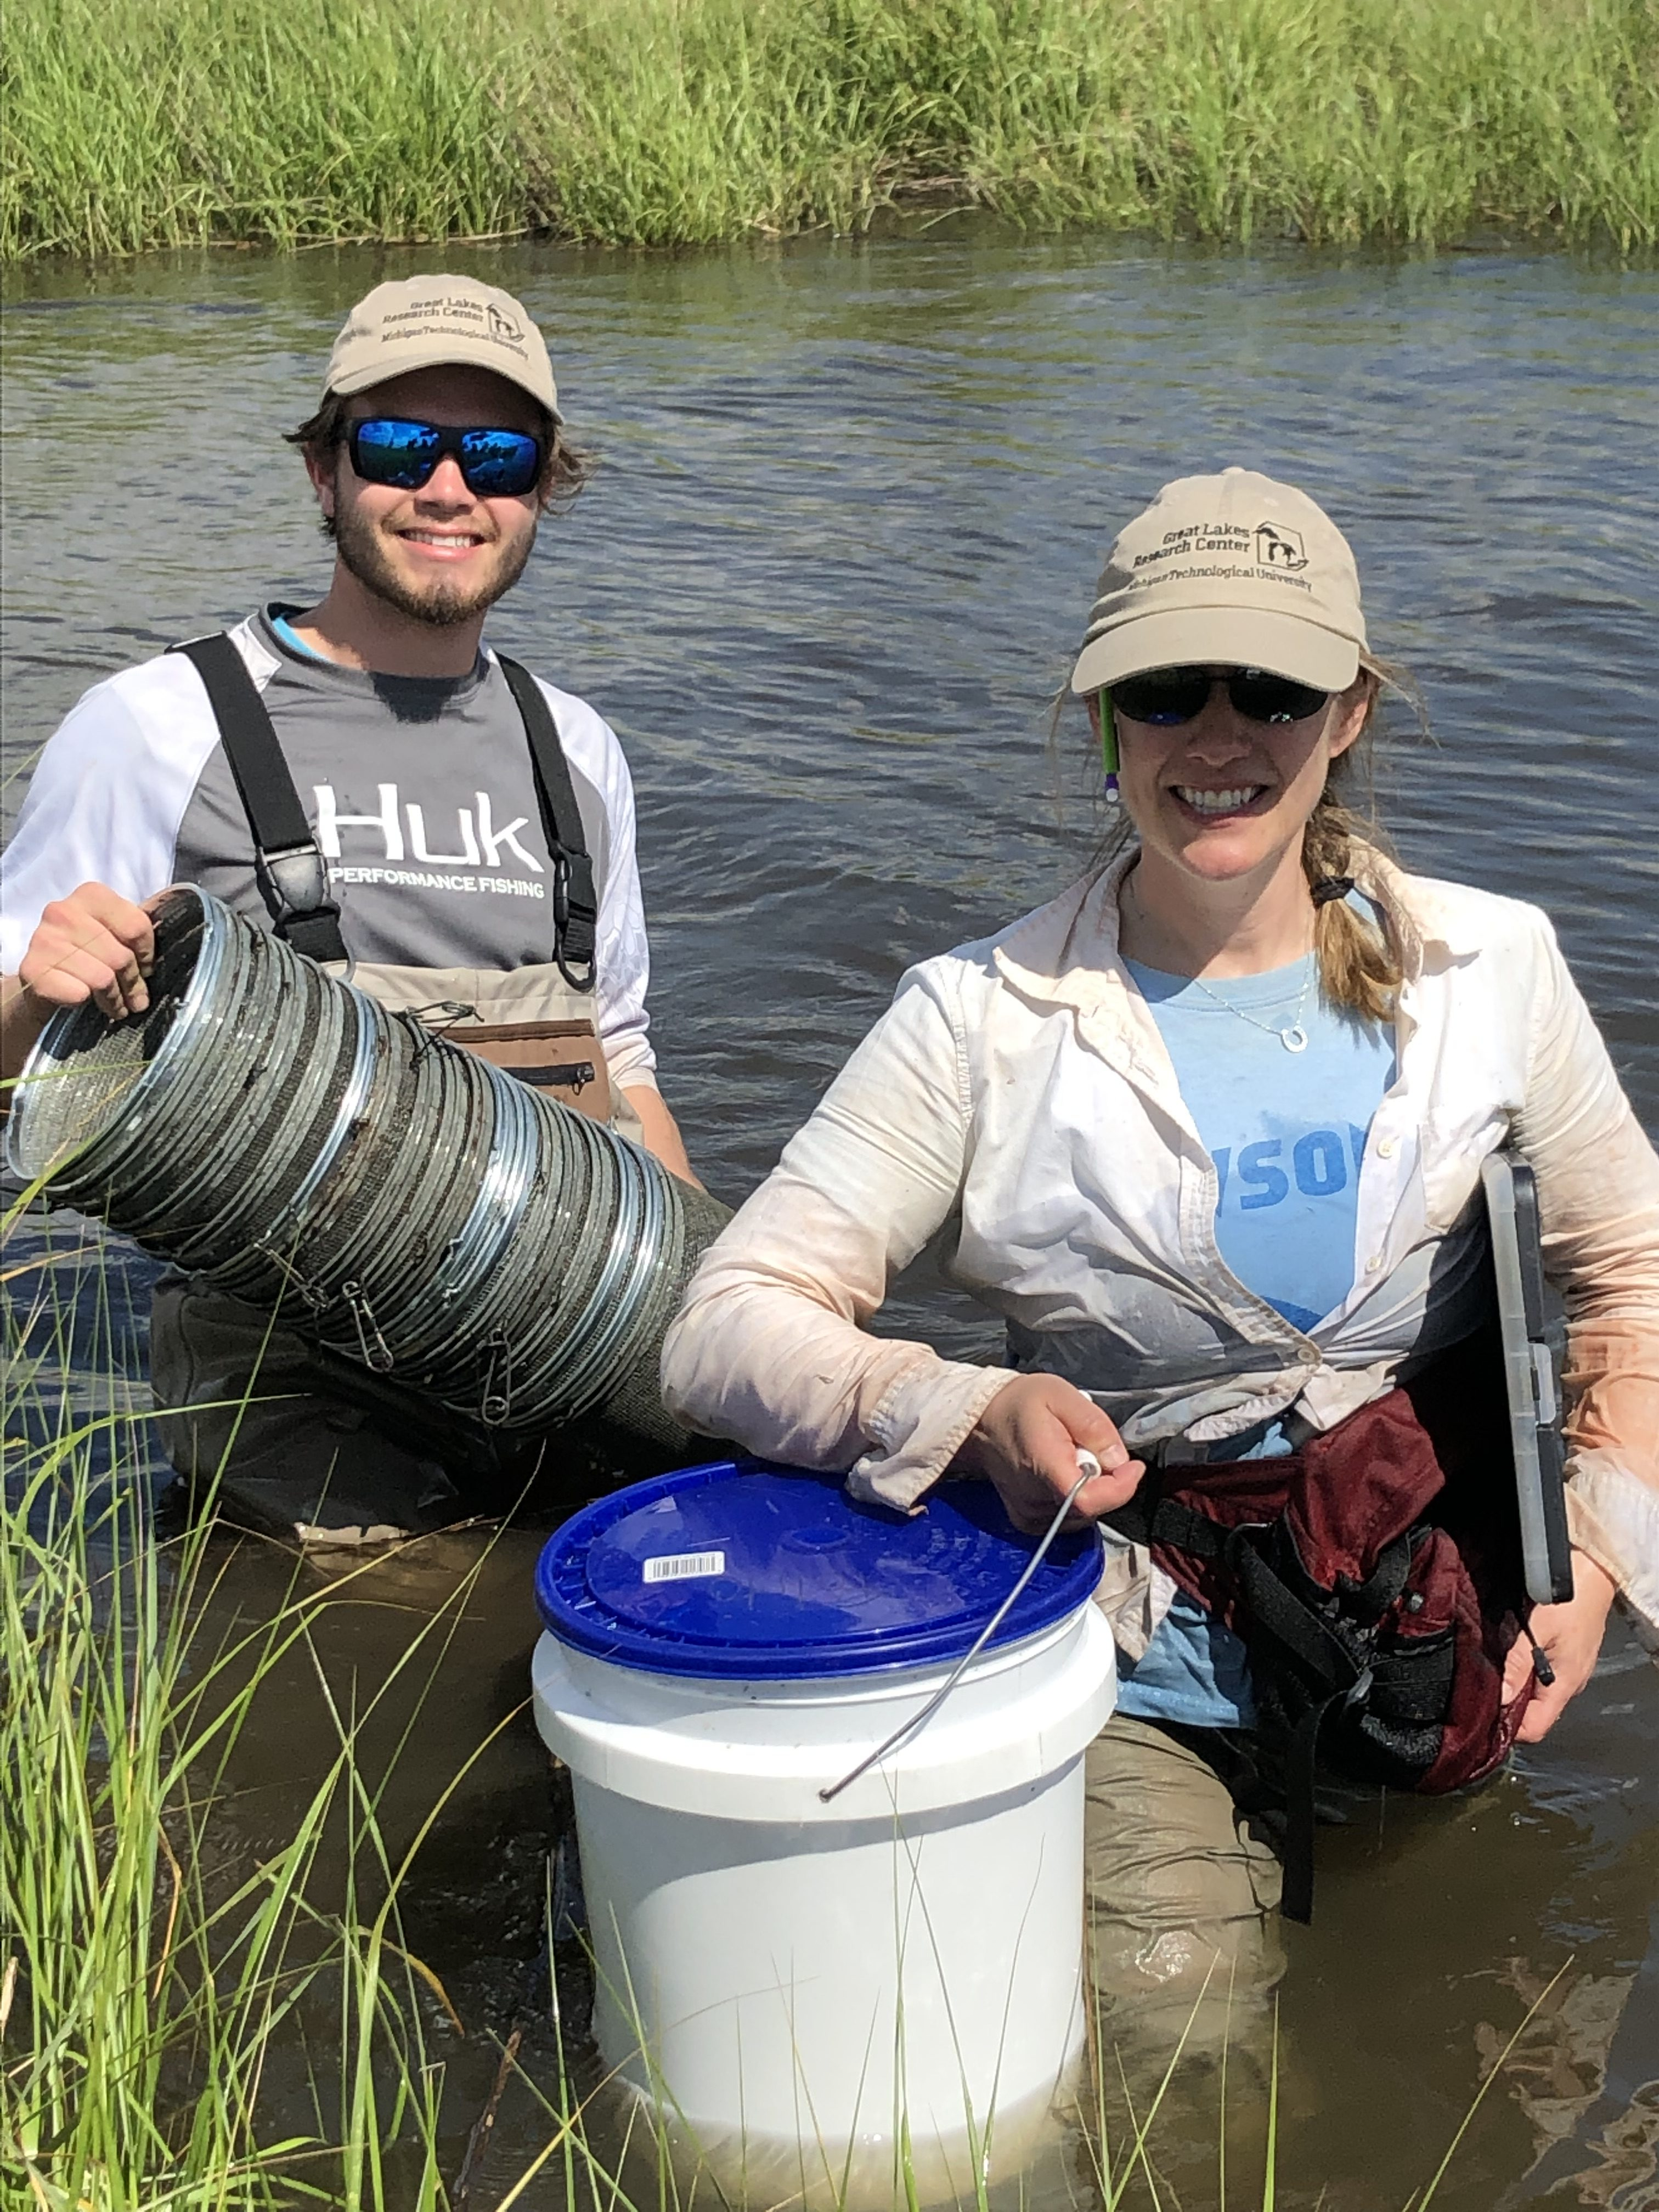 Jill and Hunter after sampling in LHB. Credit: Paola Lopez-Duarte, UNCC